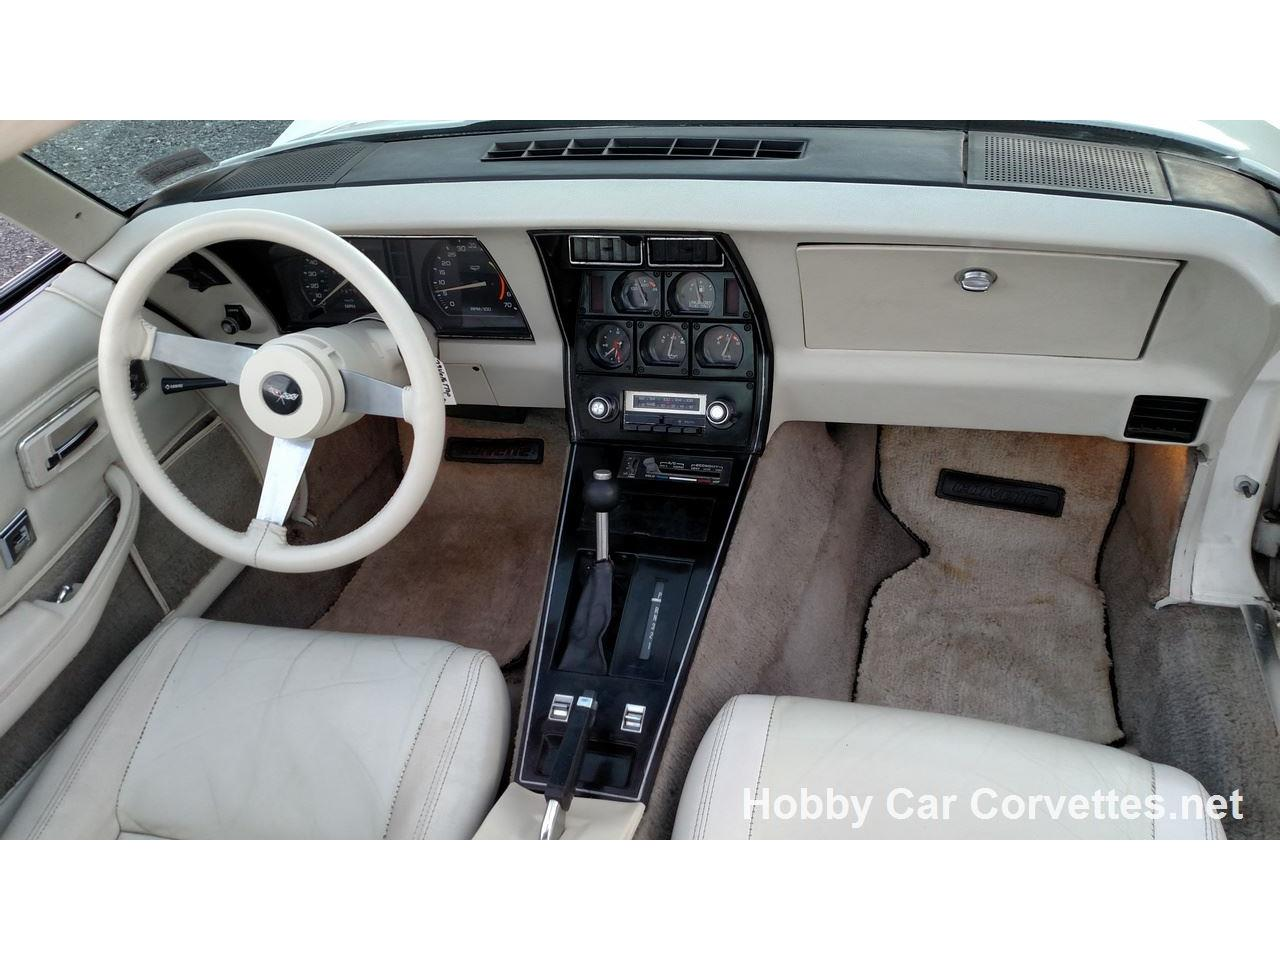 Large Picture of '79 Corvette - $14,999.00 Offered by Hobby Car Corvettes - KMMI